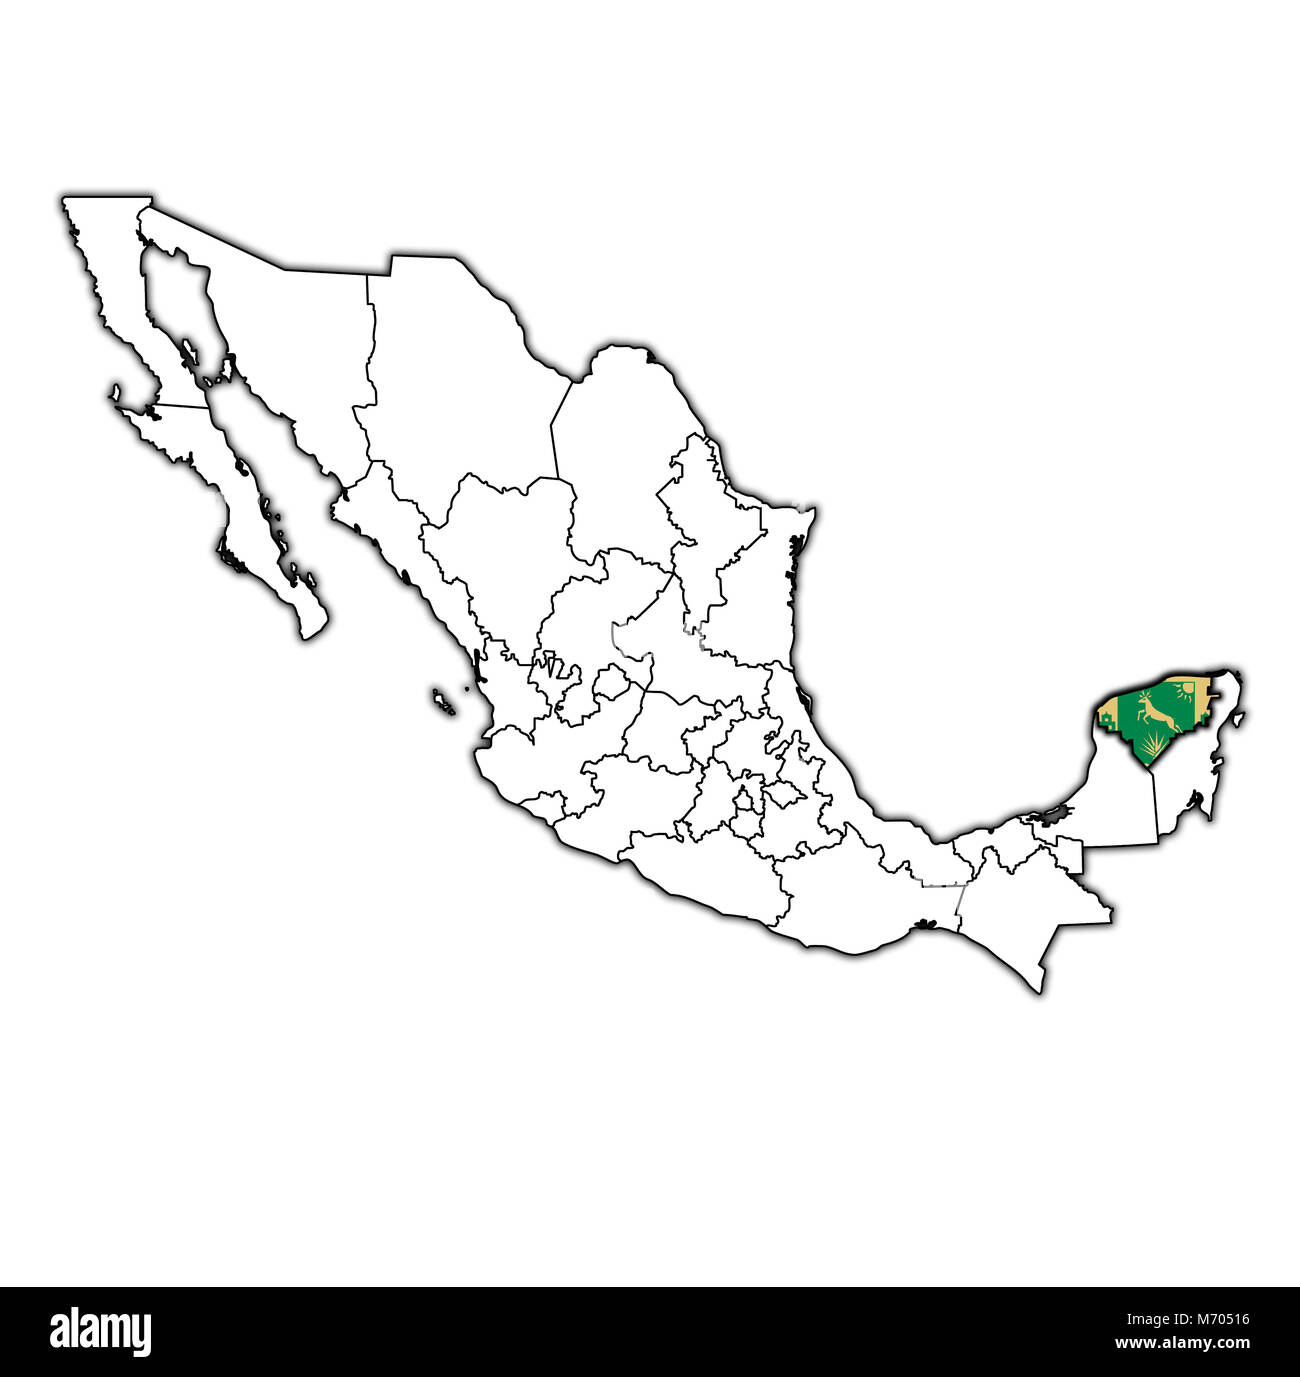 emblem of Yucatan state on map with administrative divisions and borders of Mexico - Stock Image